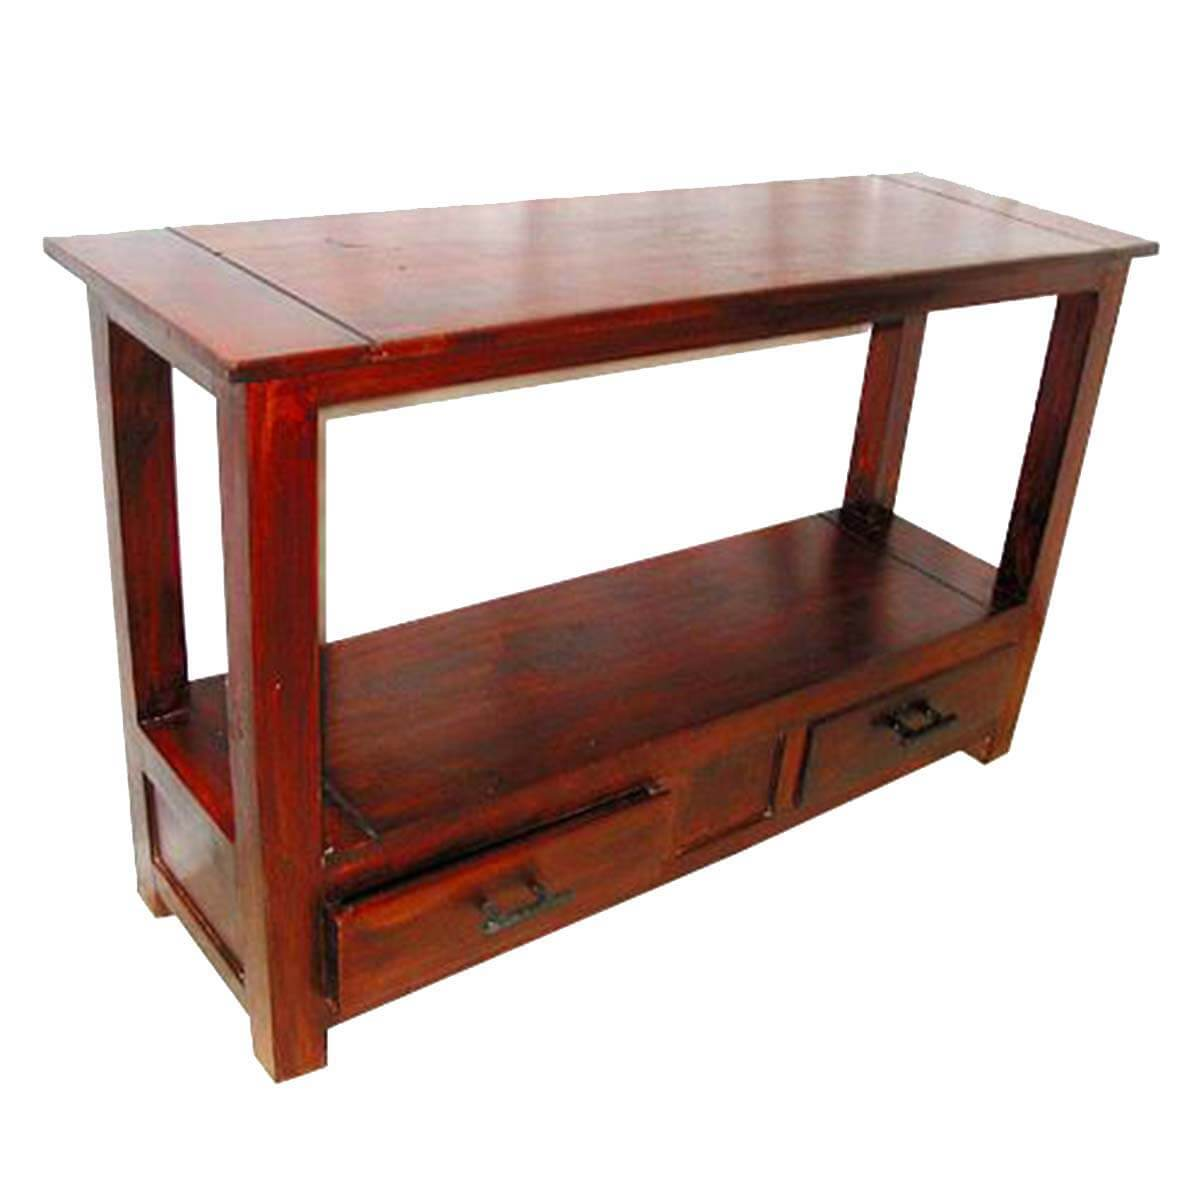 Solid wood console hall entry foyer table furniture for Solid wood furniture